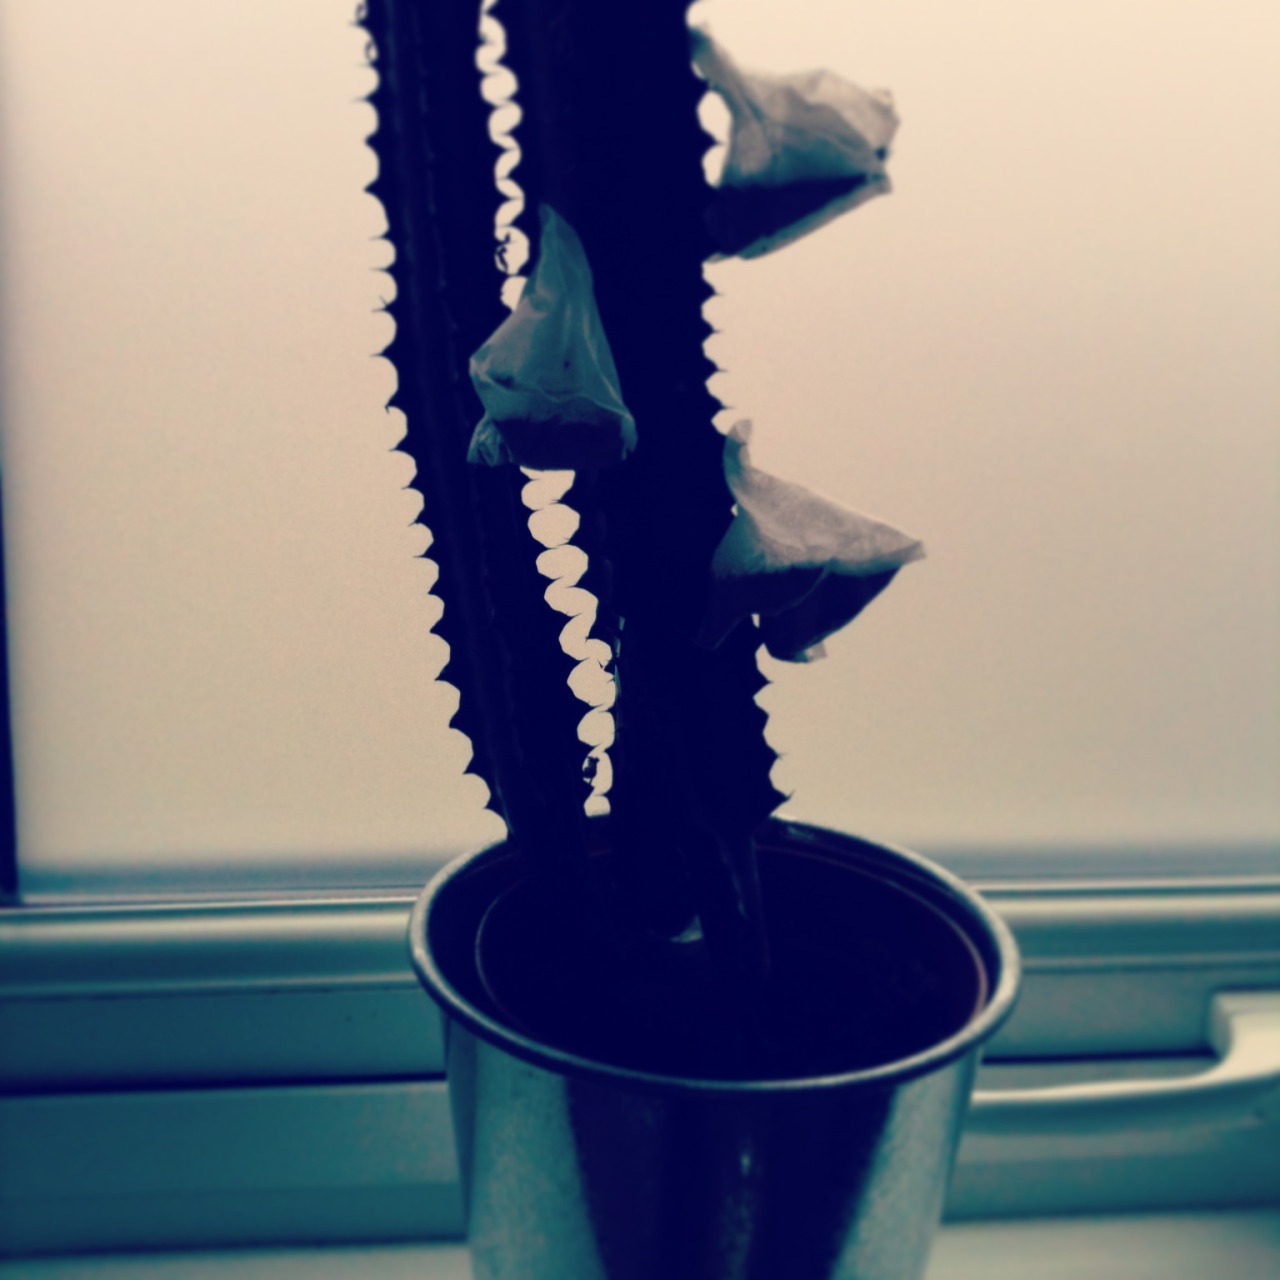 We know all too well that money doesn't grow on trees but in the Folk office you might be surprised to learn that our cactus does grow tea bags…